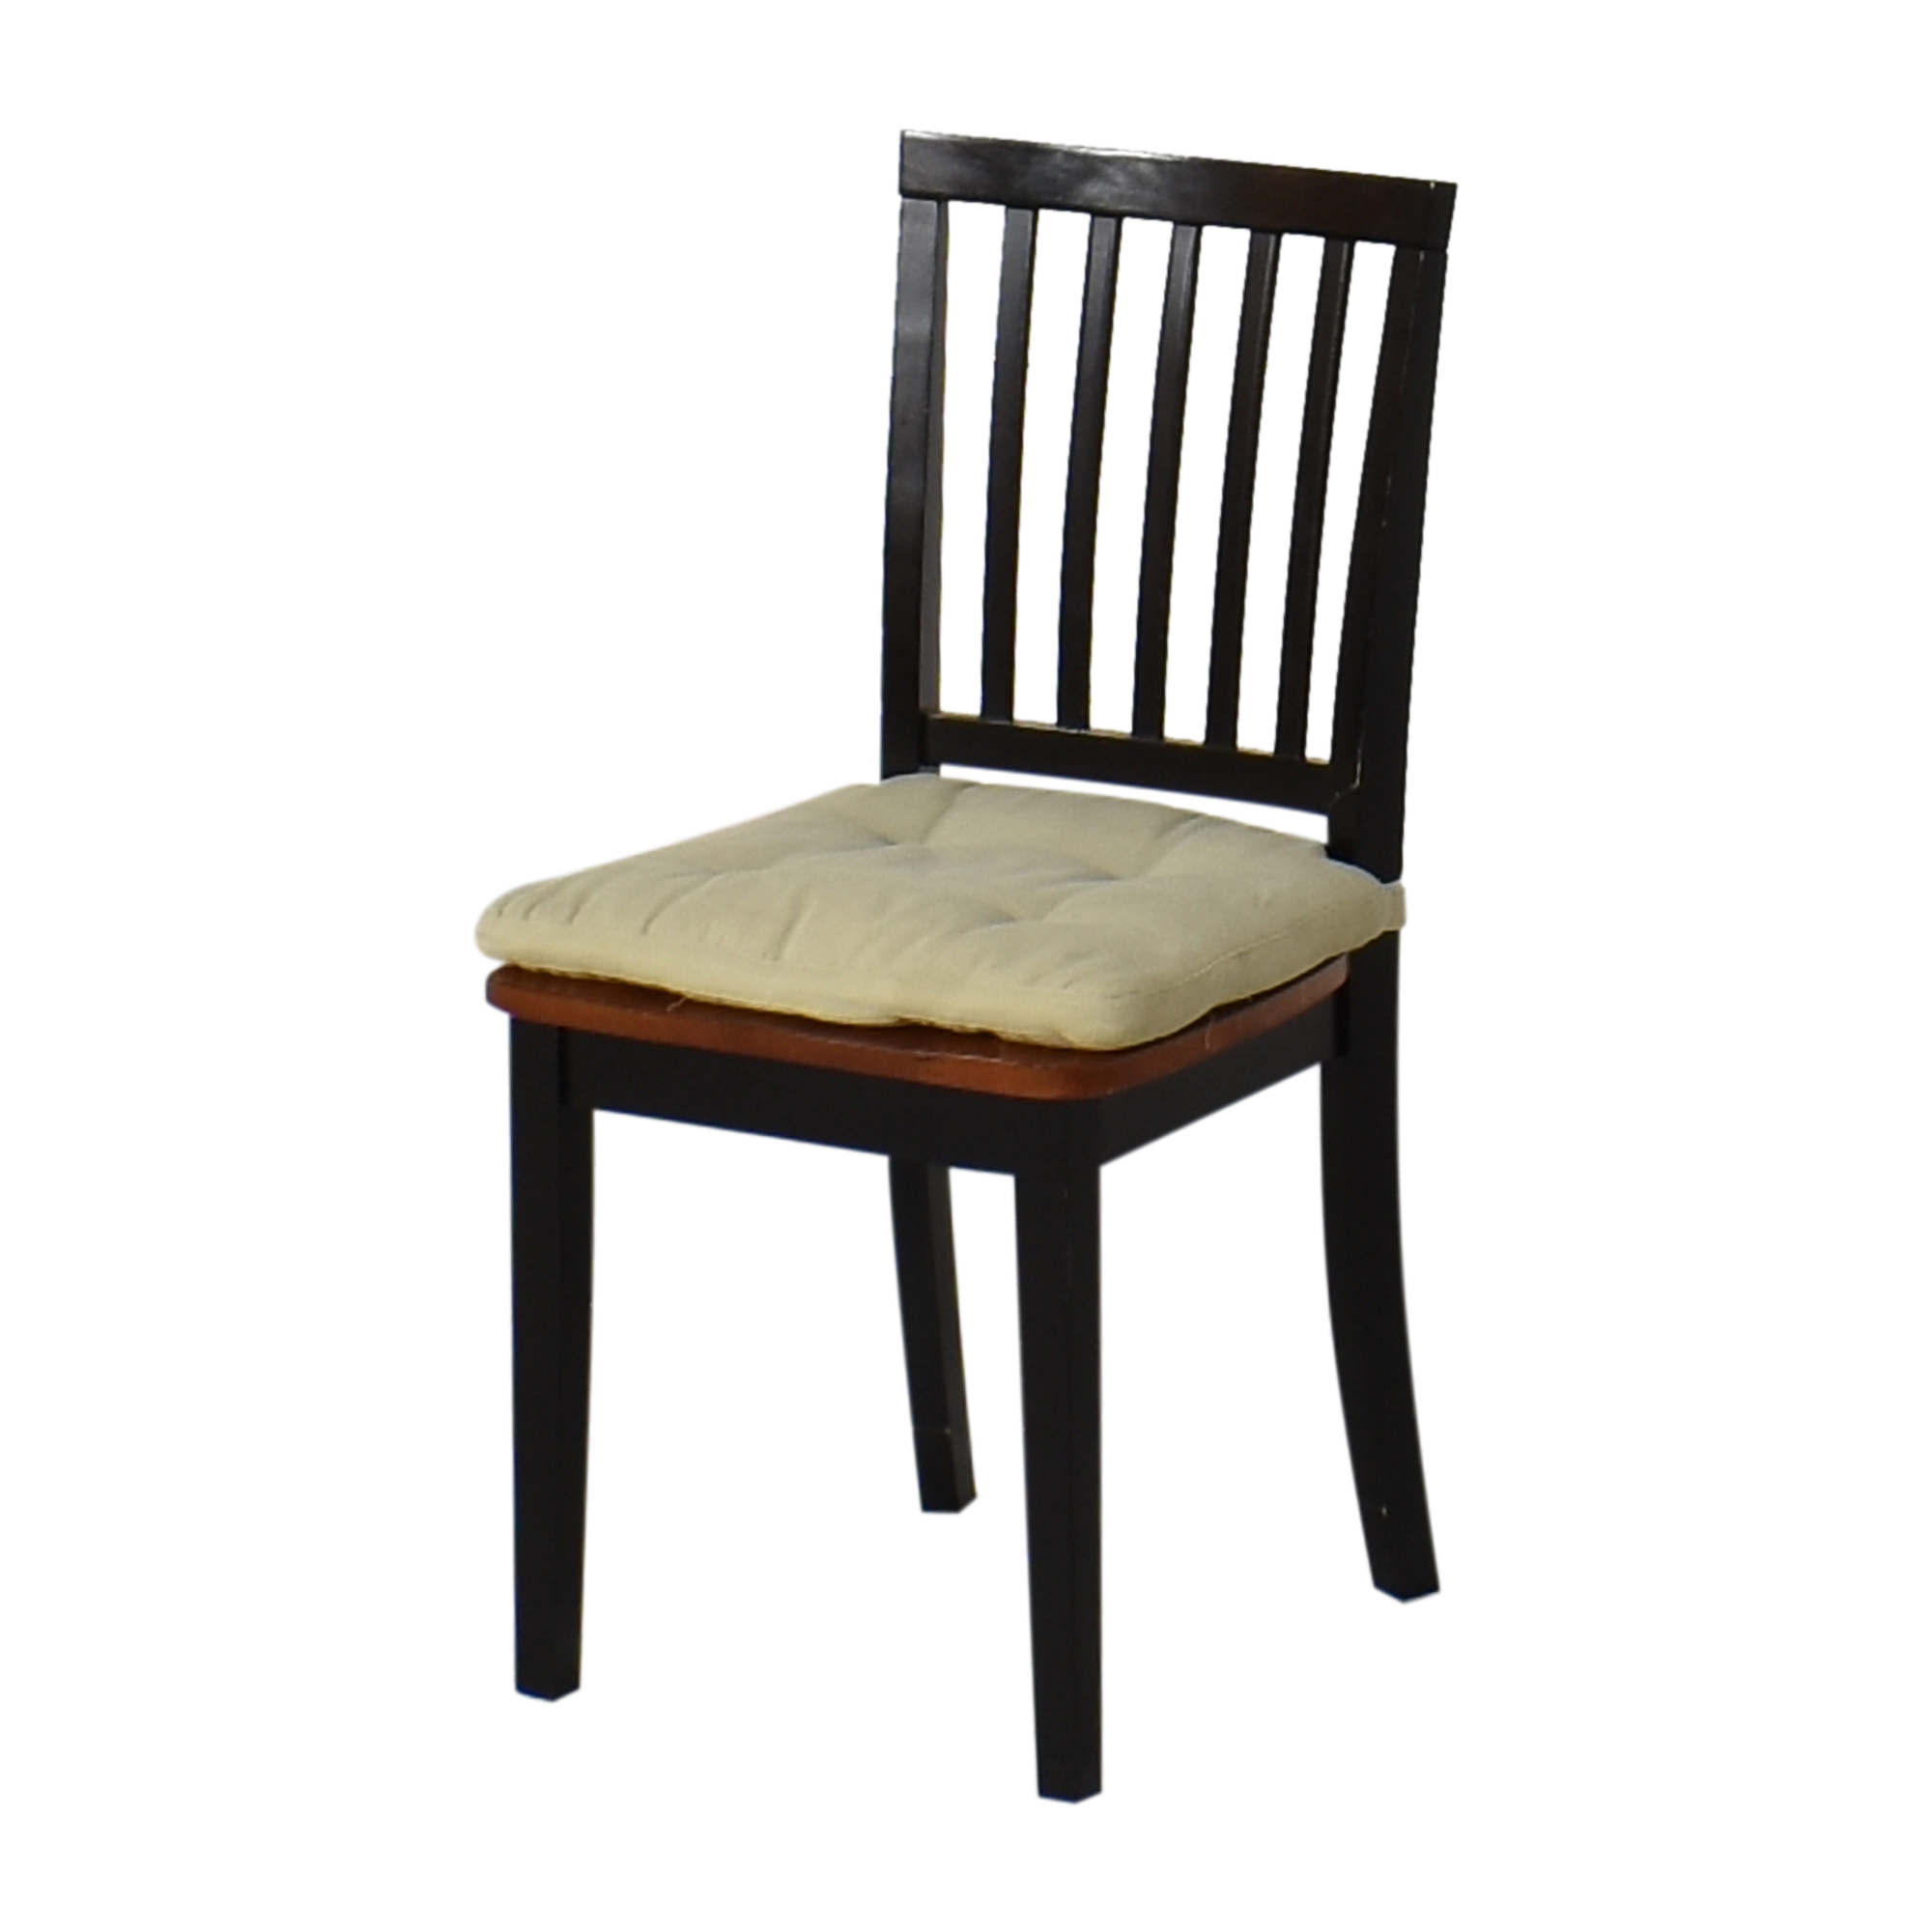 Crate & Barrel Crate & Barrel Village Bruno Dining Chairs Chairs